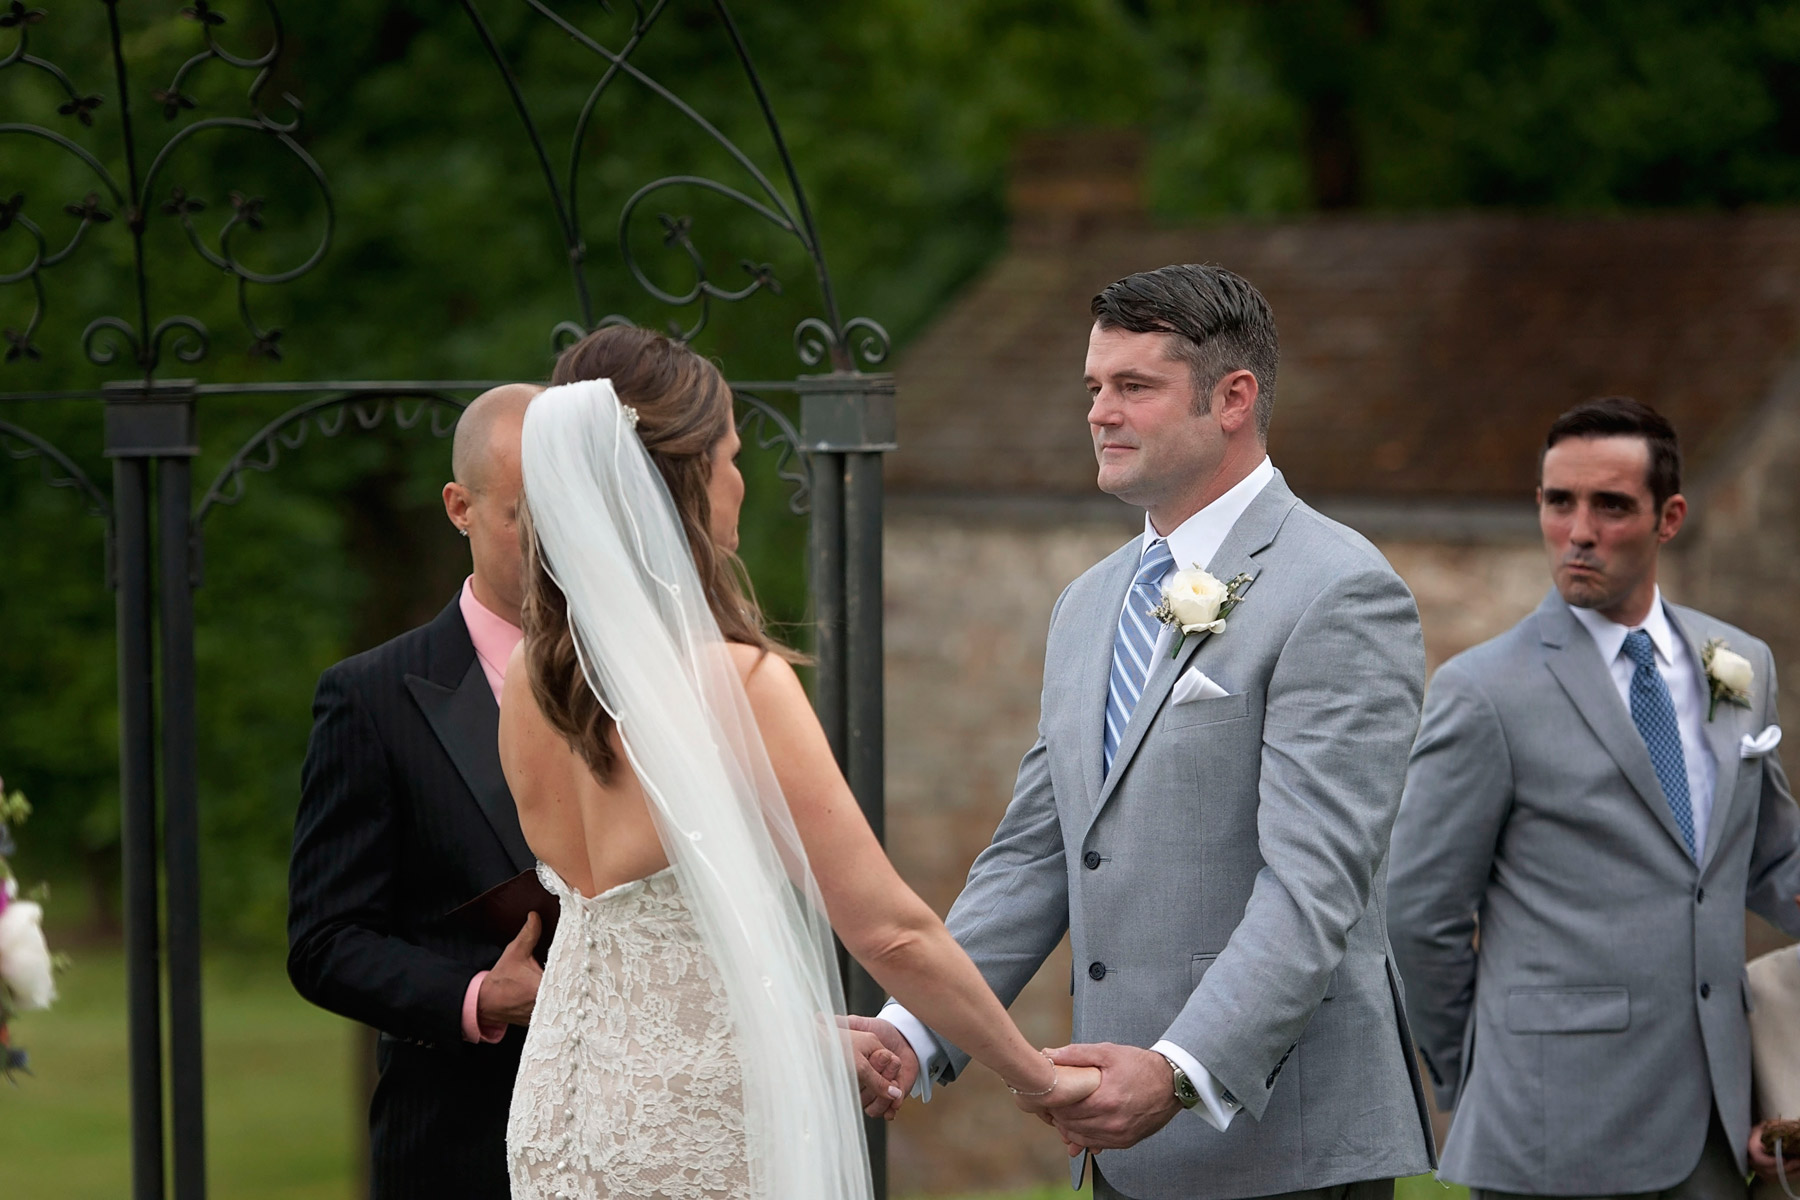 Bride and groom share wedding vows at outdoor cermony